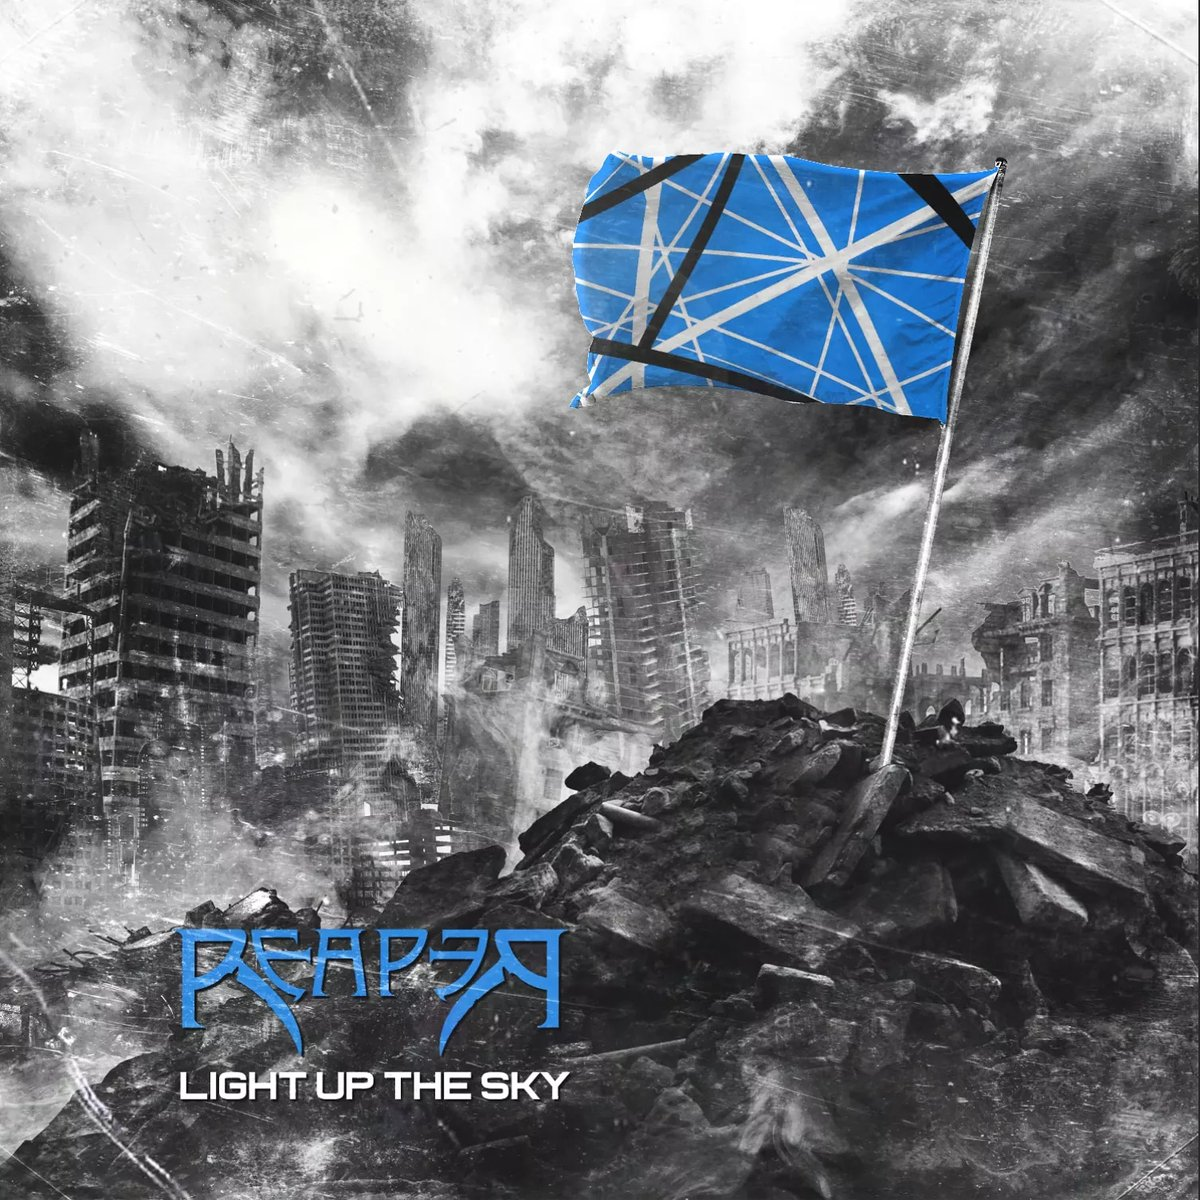 📢LIGHT UP THE SKY COMING 30TH JAN📢   READ THE THREAD BELOW FOR #GIVEAWAY AND #CHARITY INFO  Eddie passing last year was such a colossal loss to rock and metal. His guitar playing was a huge inspiration to our work and this cover is our salutation to the man himself... (1)